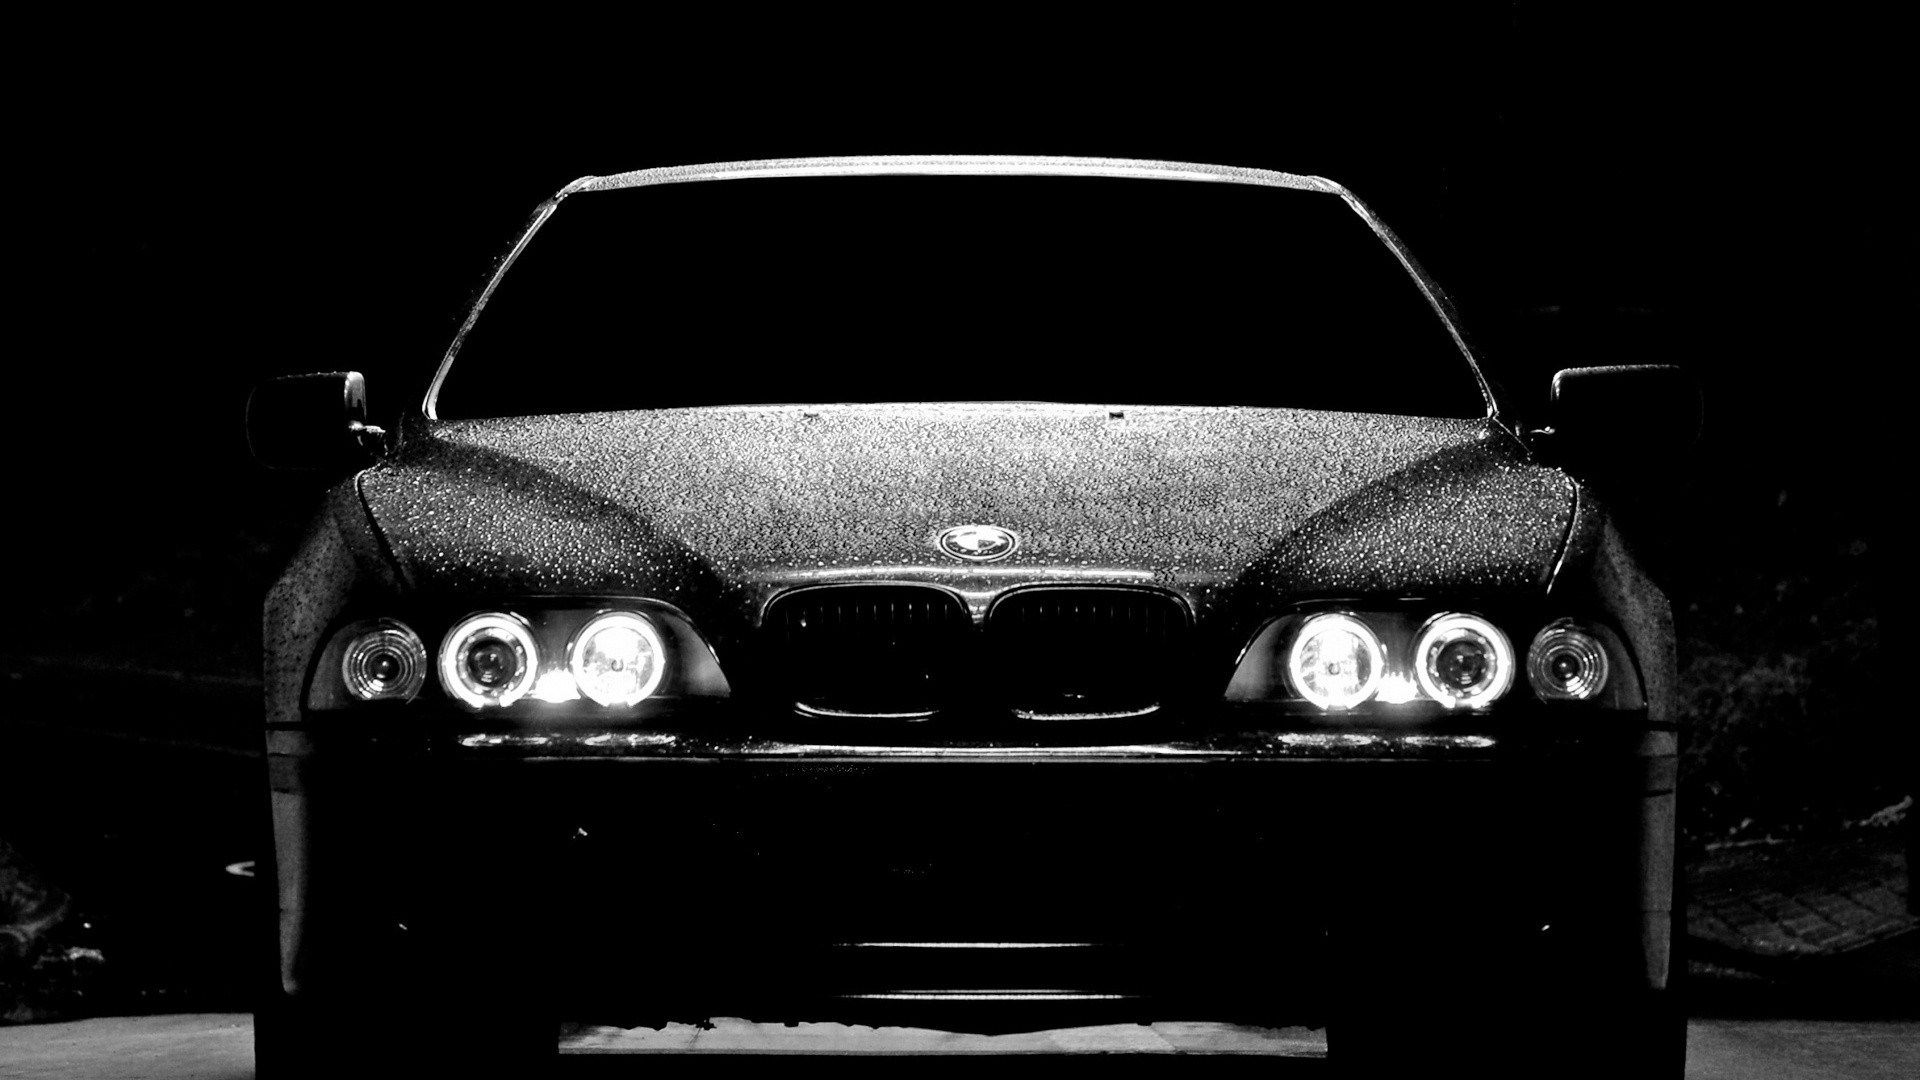 Bmw M5 Black Wallpaper New Hd Cars Wallpaper Bmw Wallpapers